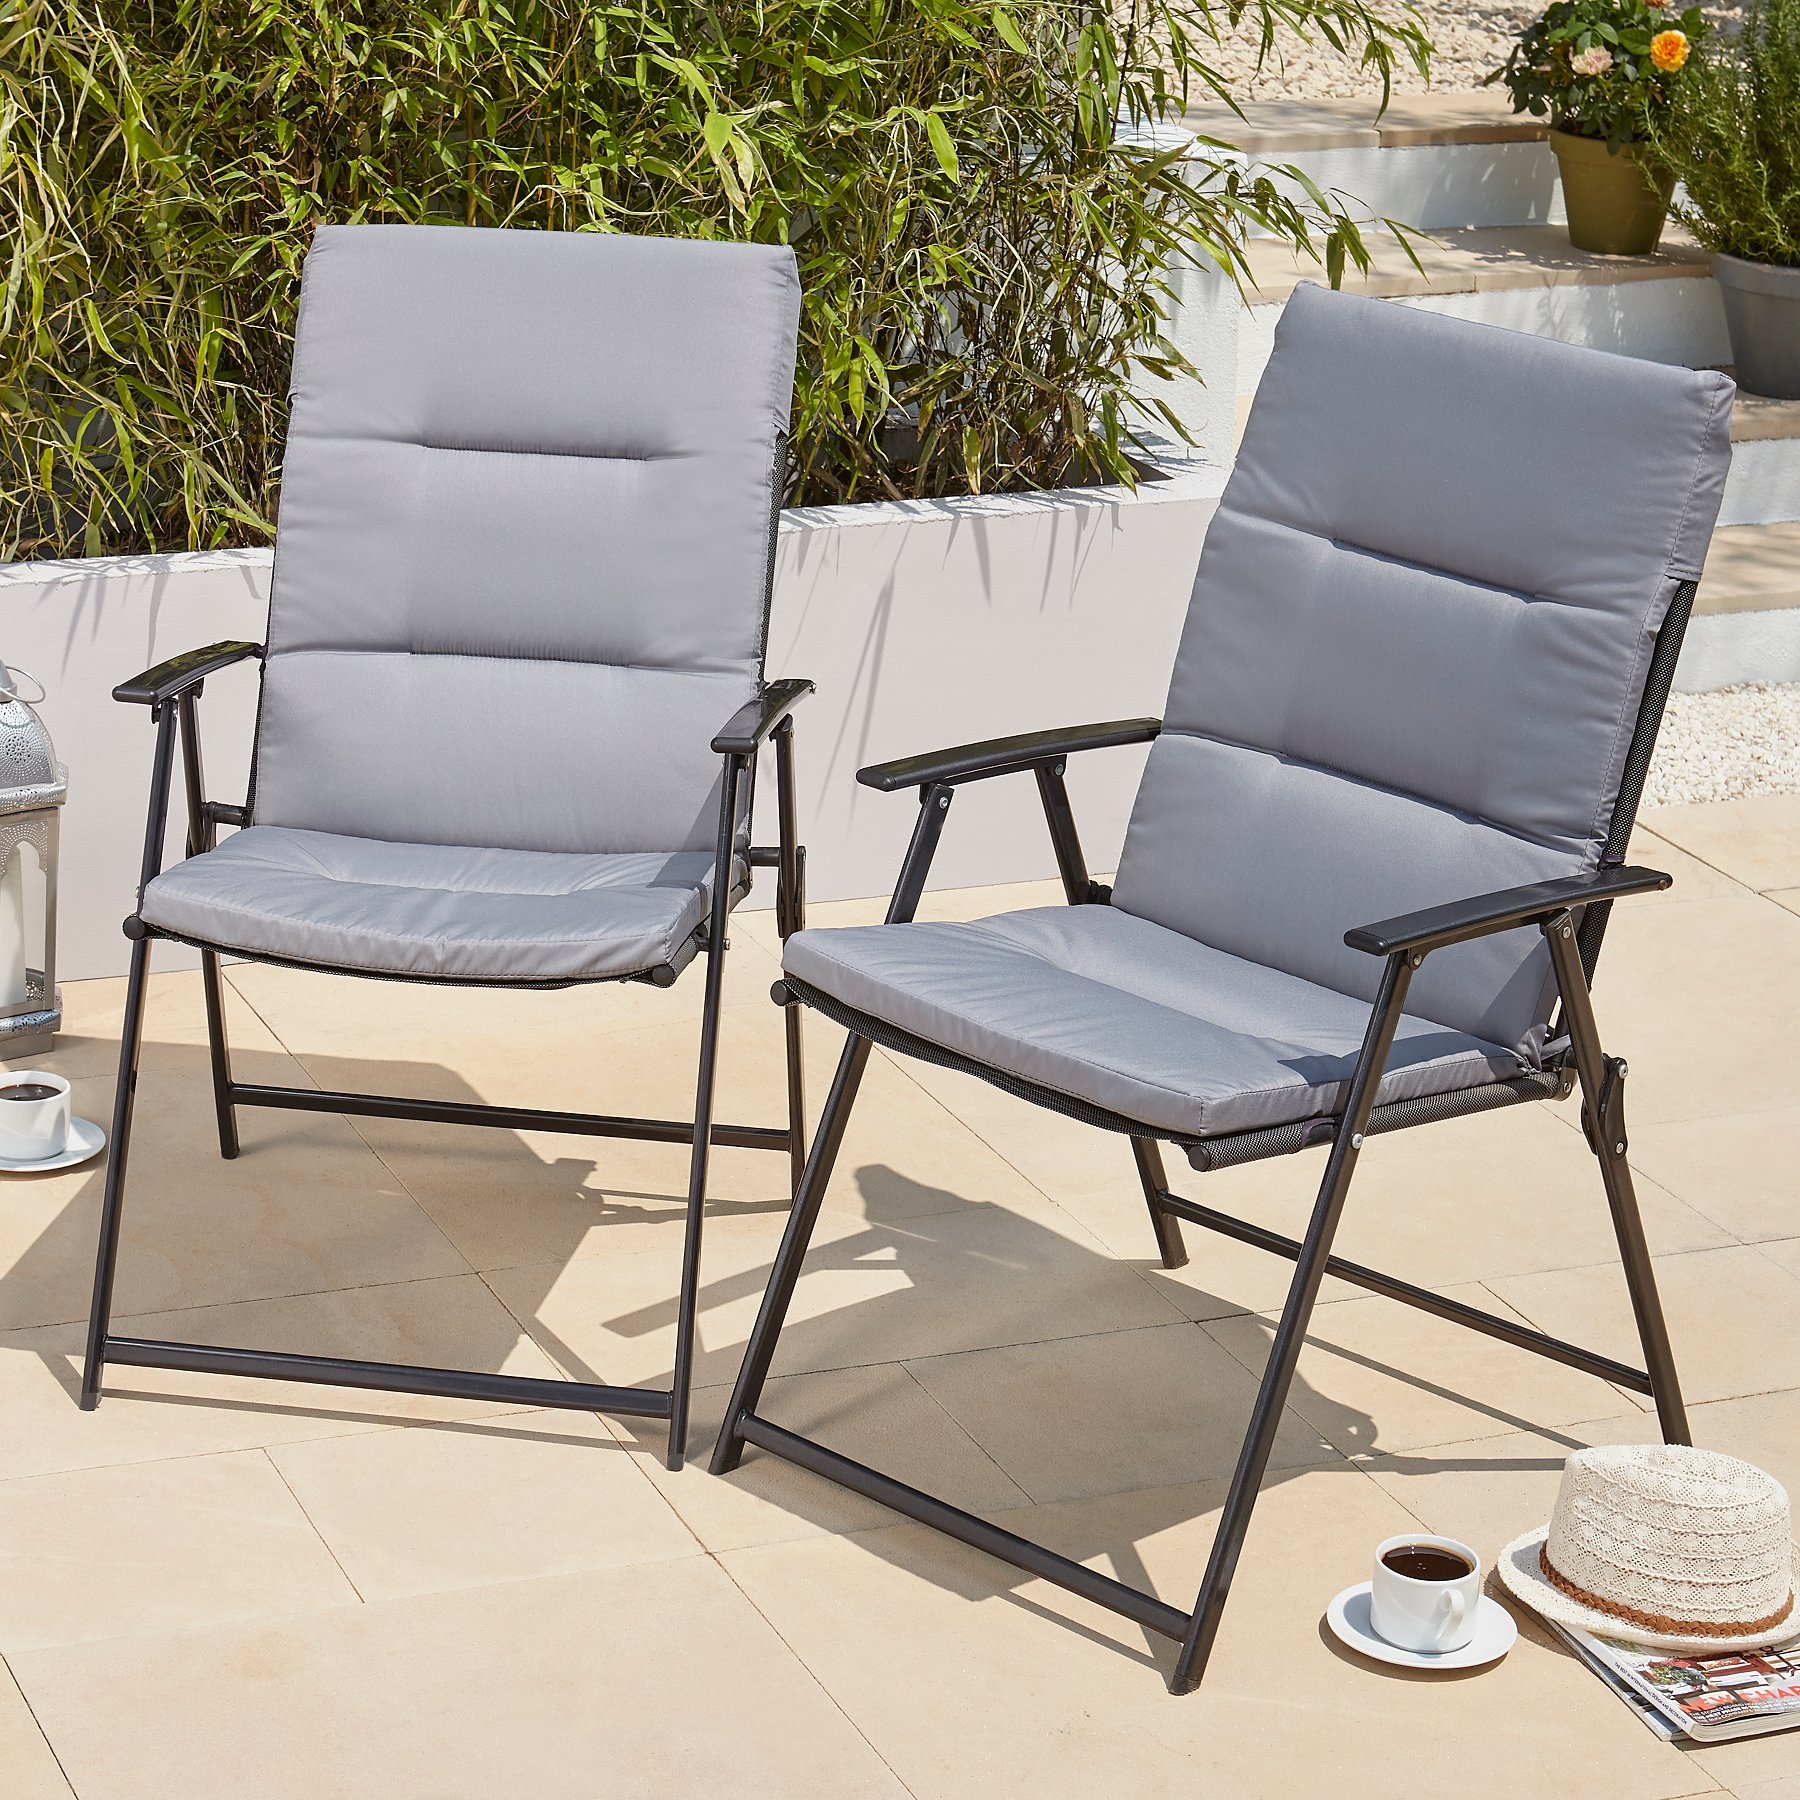 Charcoal Garden Seat Cushions 2 Pack